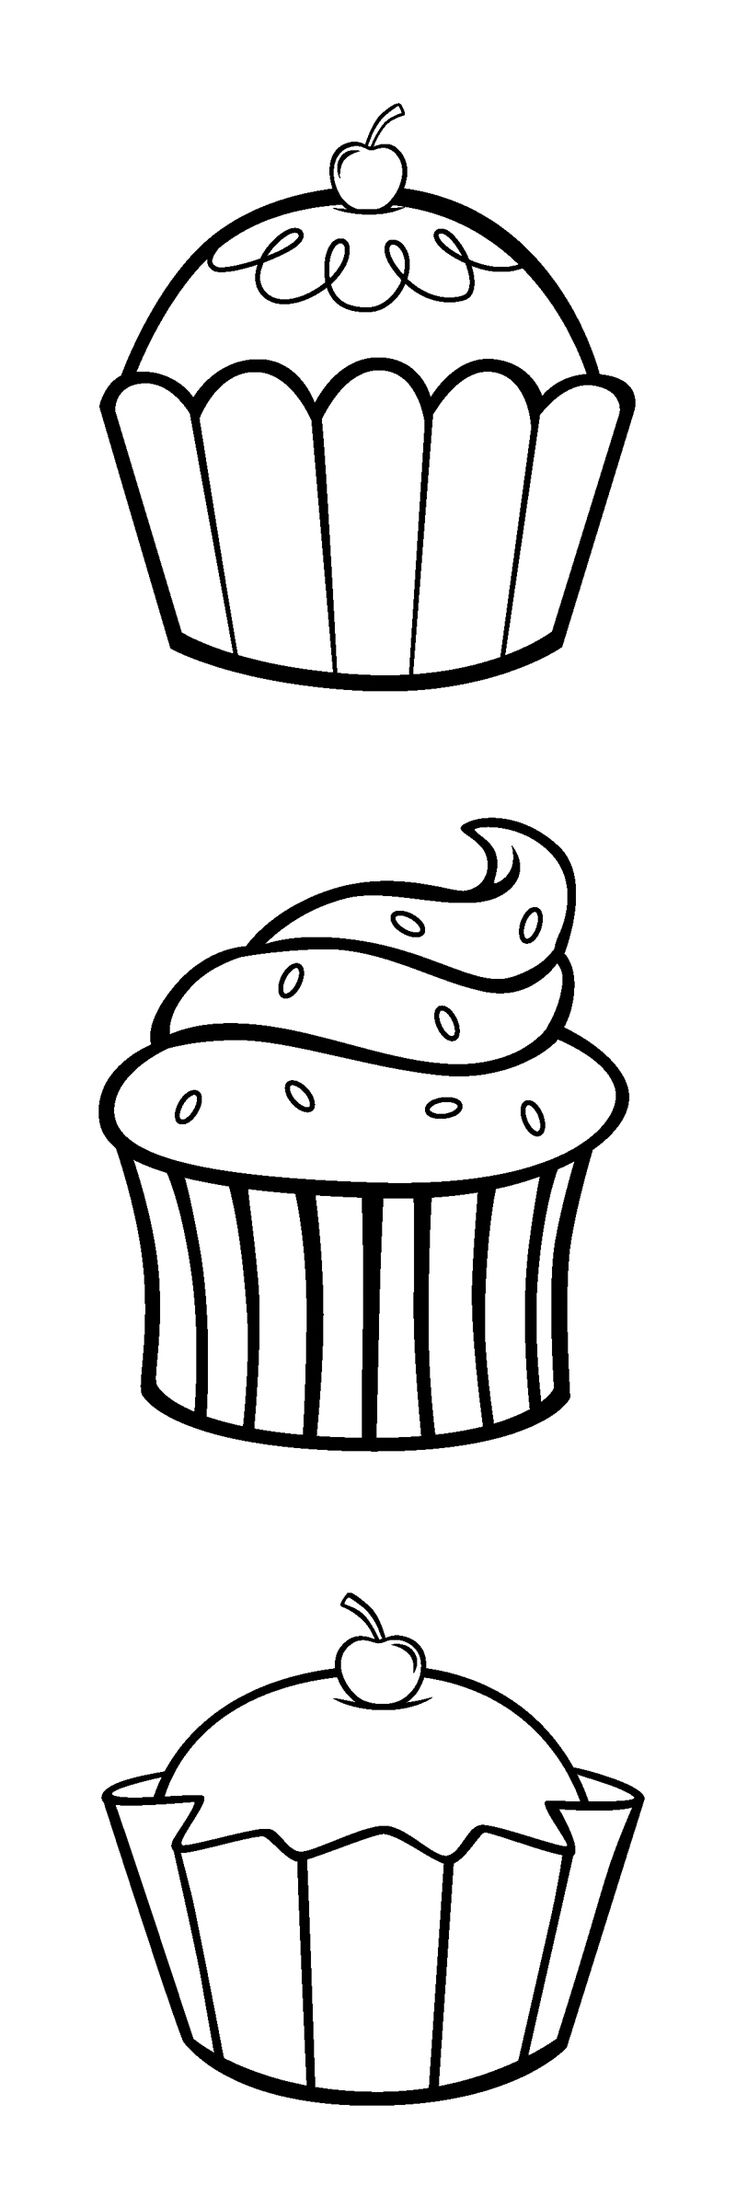 cupcake colouring template awesome cupcake cup cake candle coloring page colorful template cupcake colouring